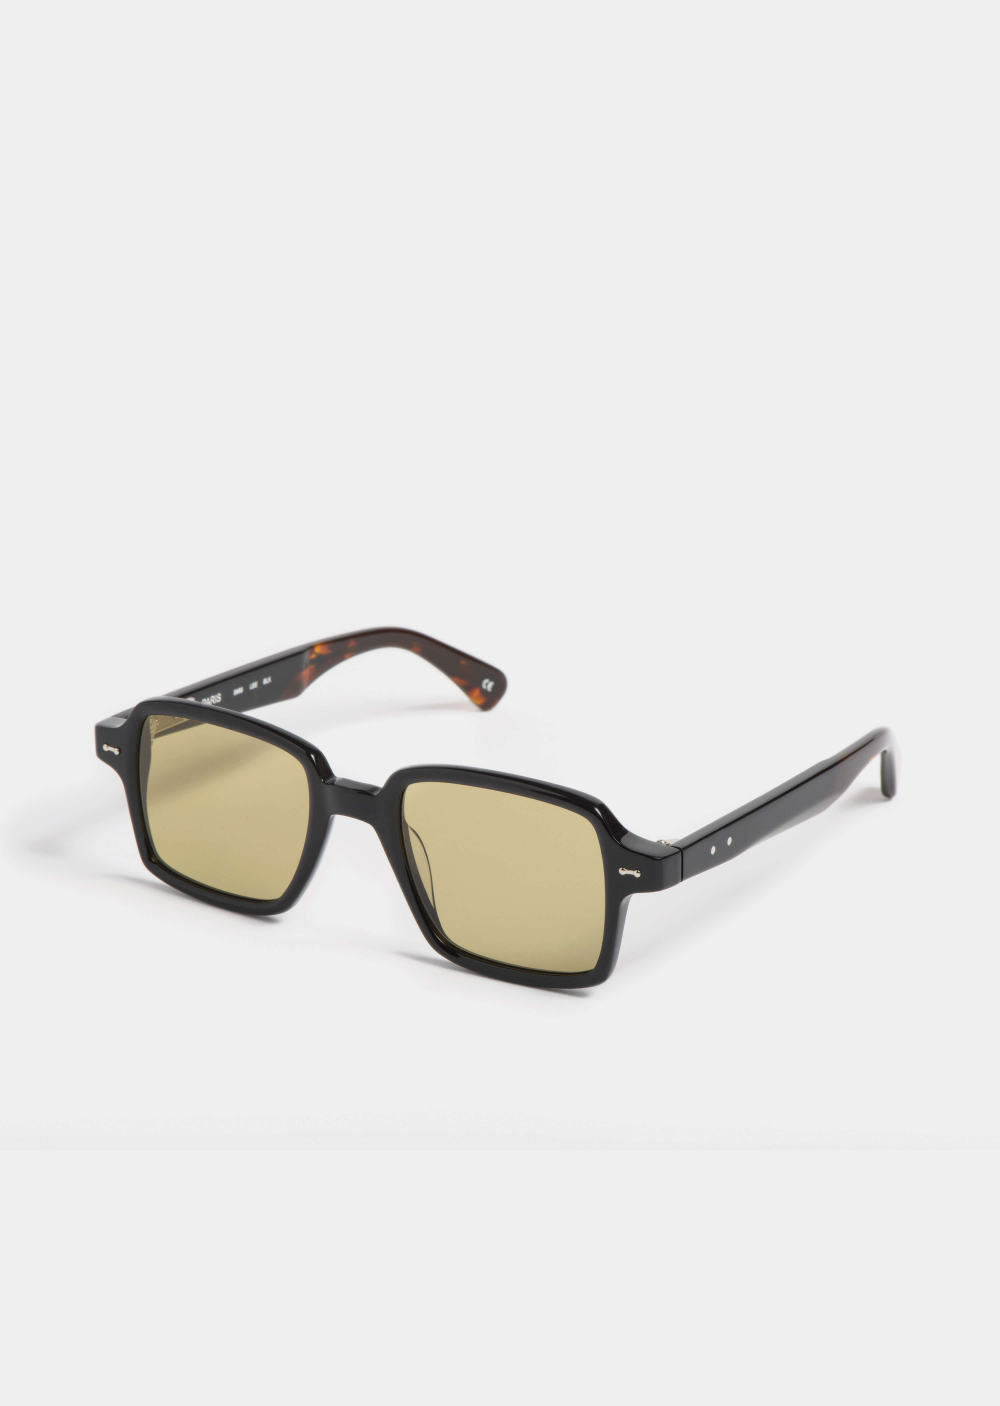 PETER AND MAY -  - S89 Lee black khaki